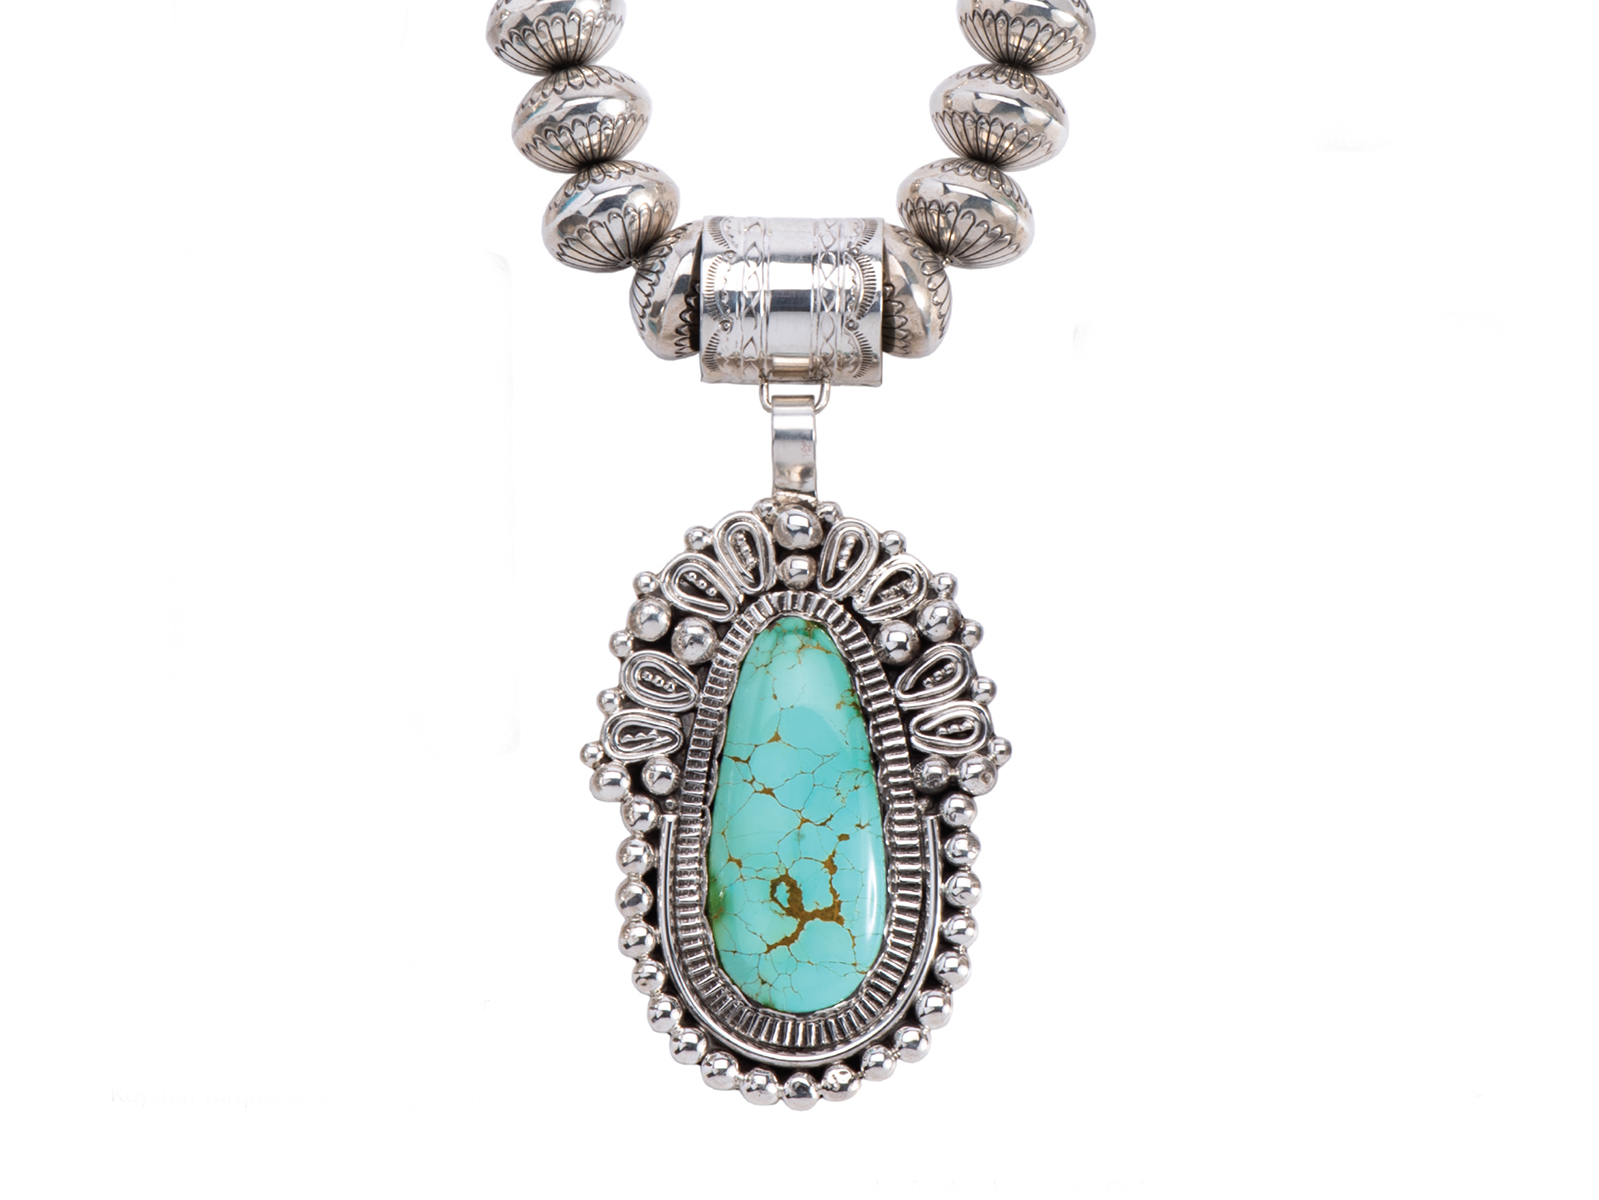 Large Royston Turquoise Silver Pendant